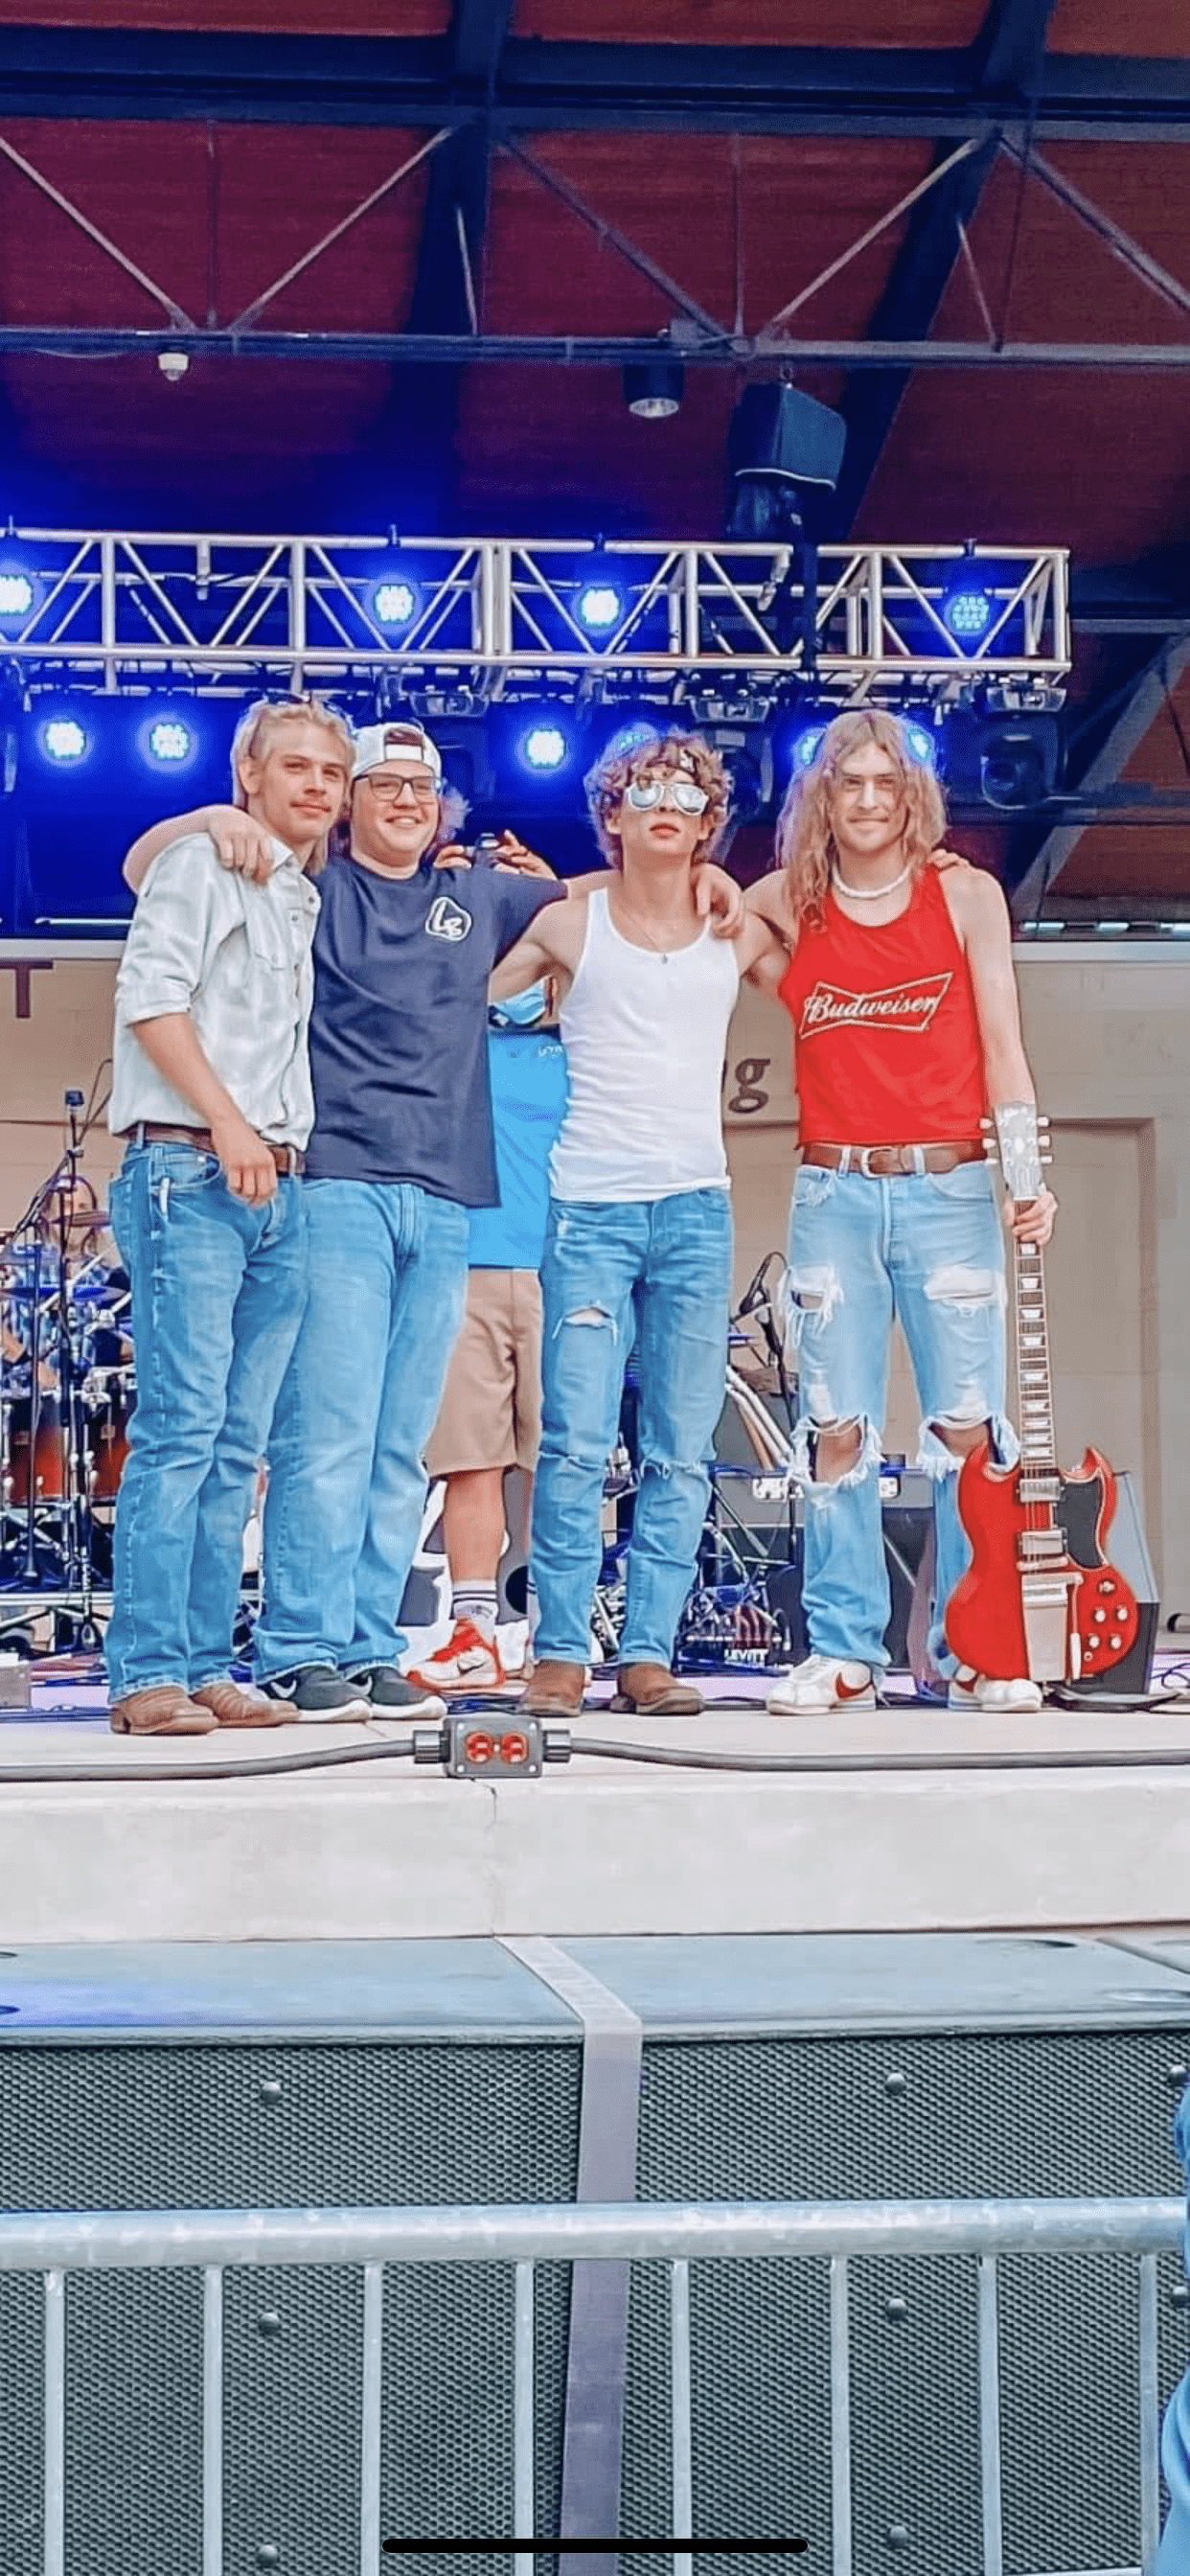 four guys standing together